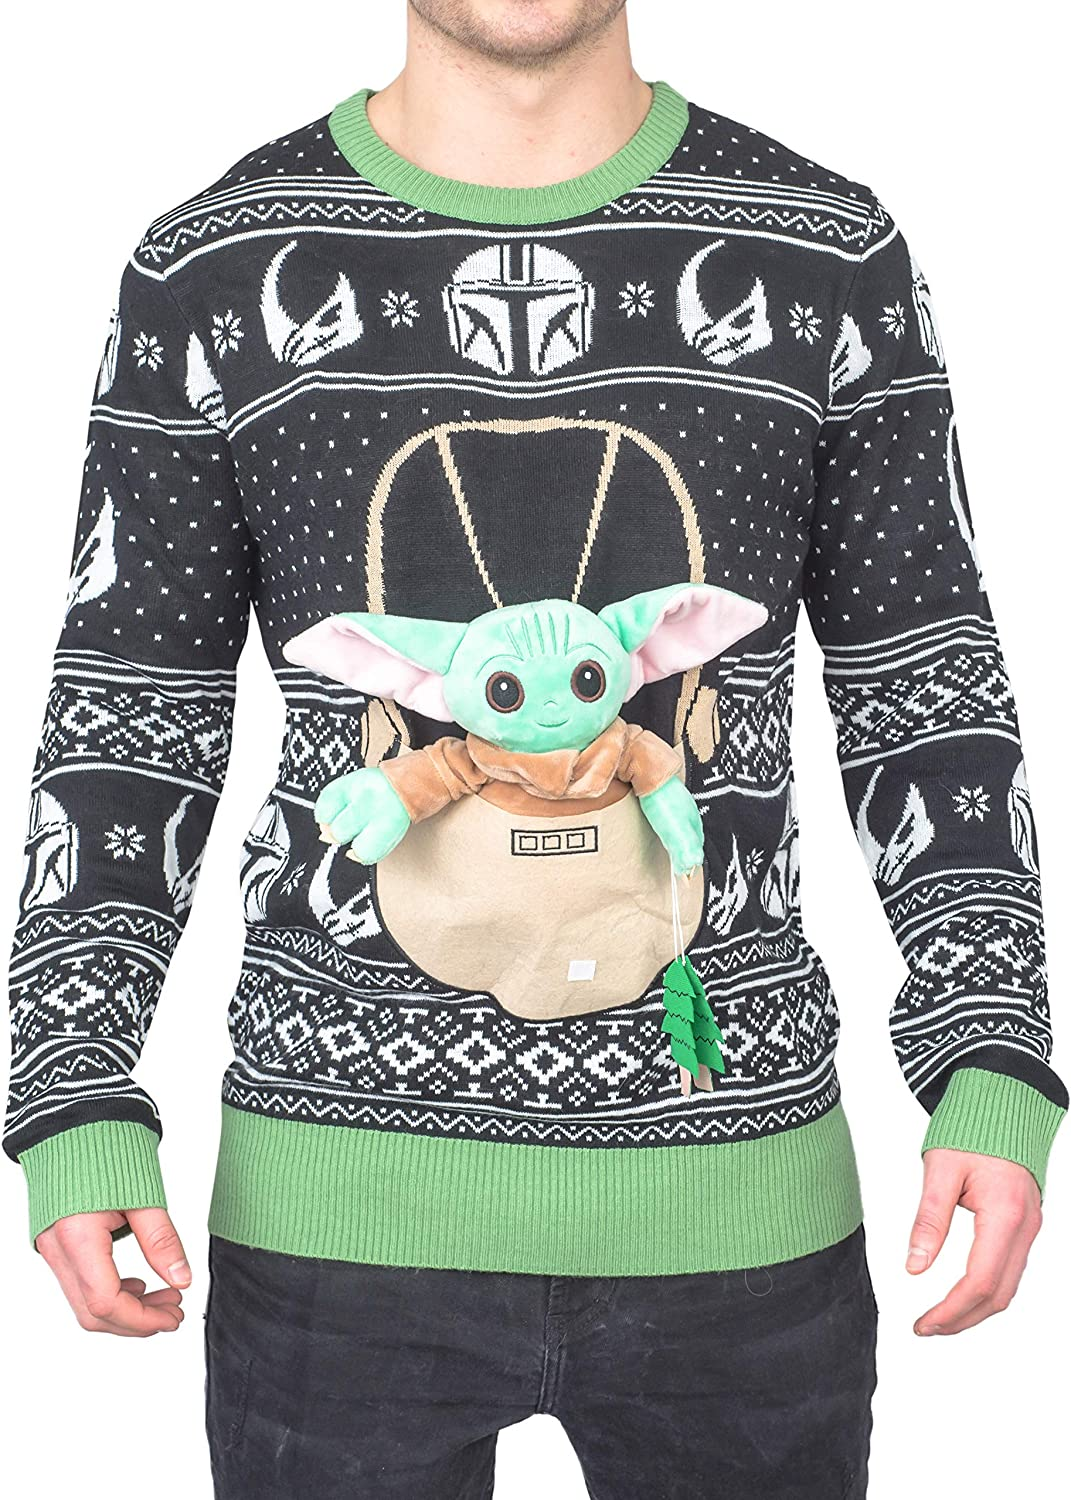 Star Wars Baby Yoda The Child Forces Trees Ugly Christmas Sweater